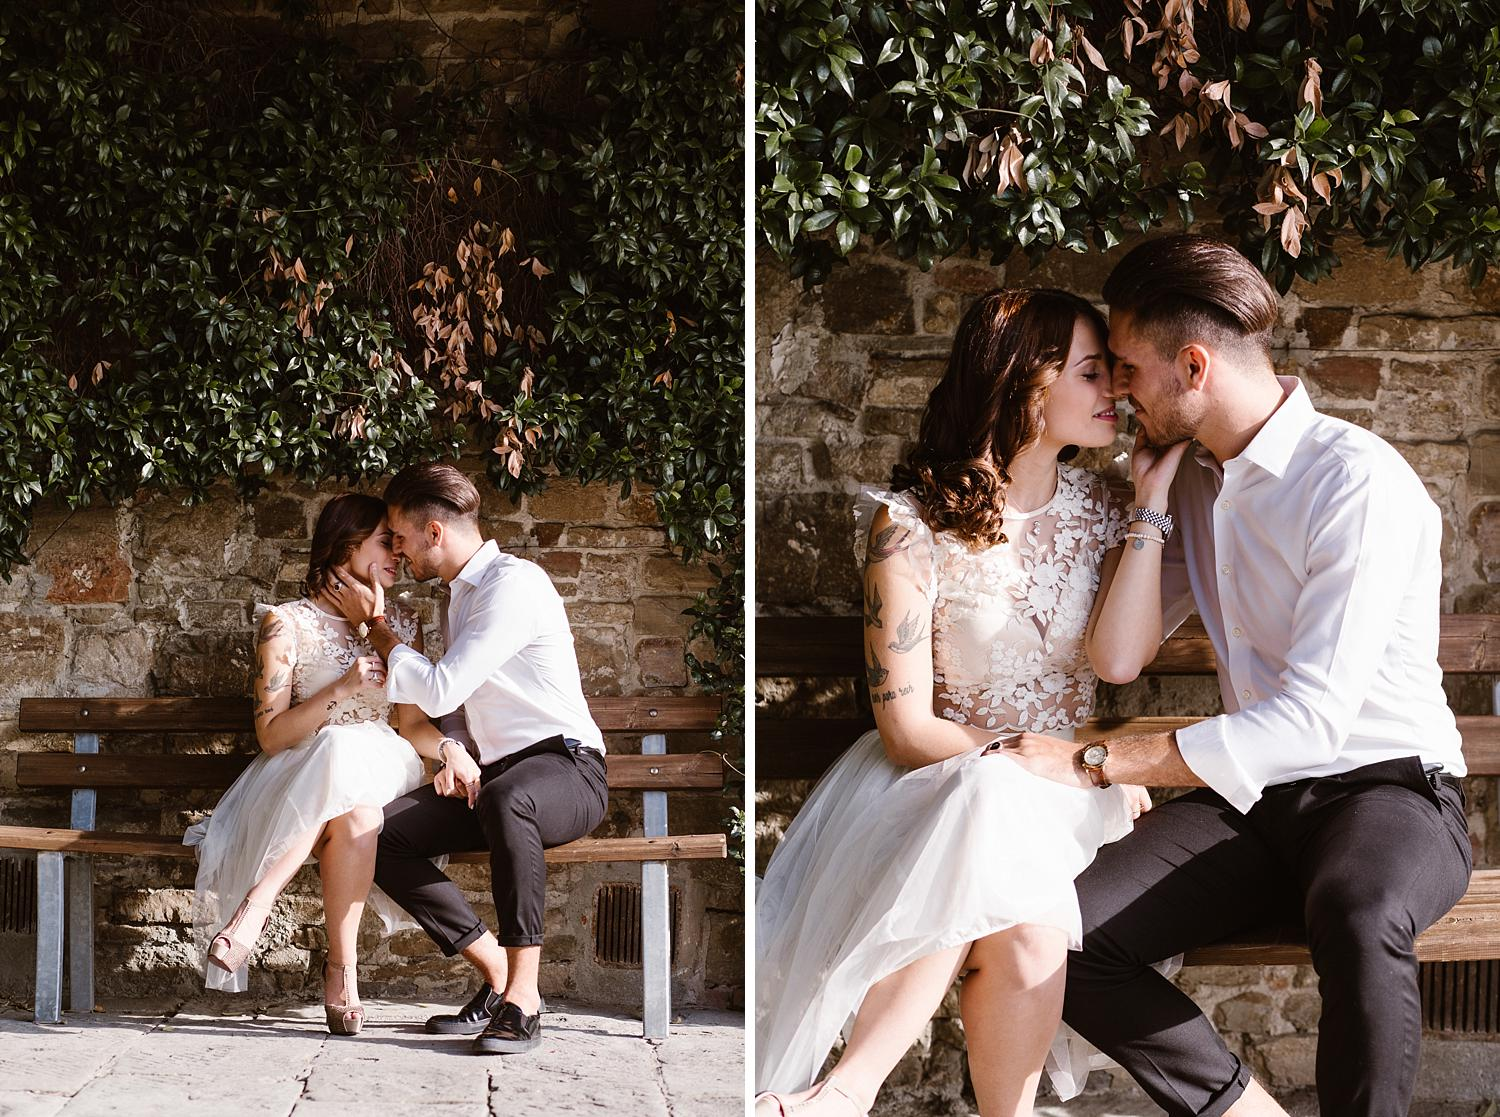 weddingphotographer florence 25 - Maddalena & Arturo - A Chic Anniversary Session in Florence